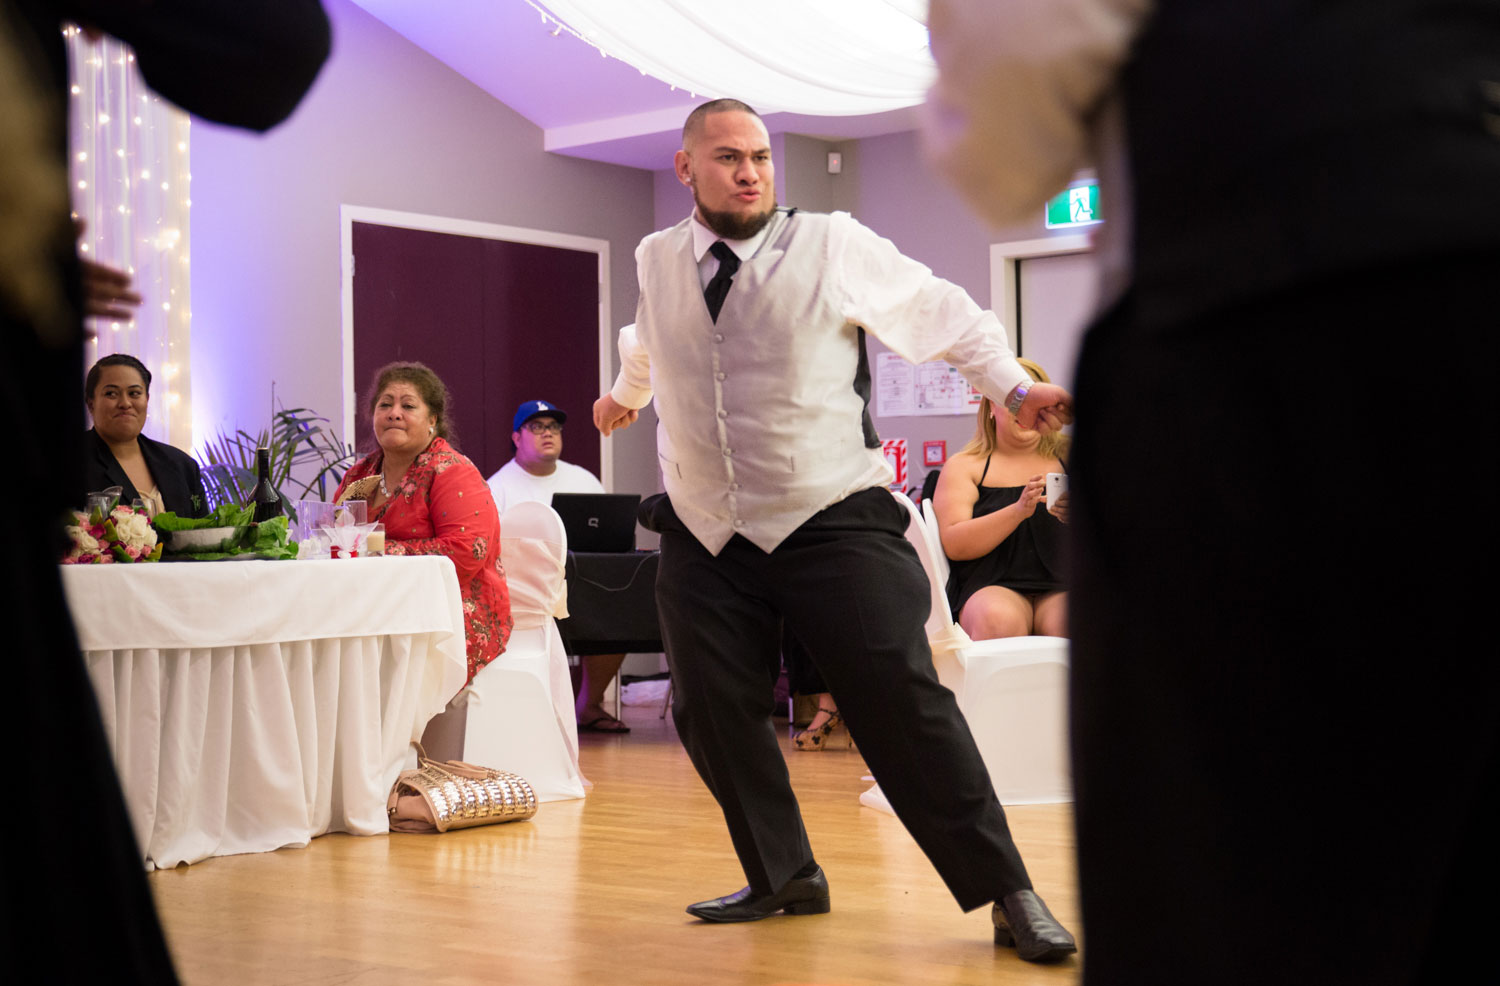 auckland wedding reception groomsman dancing